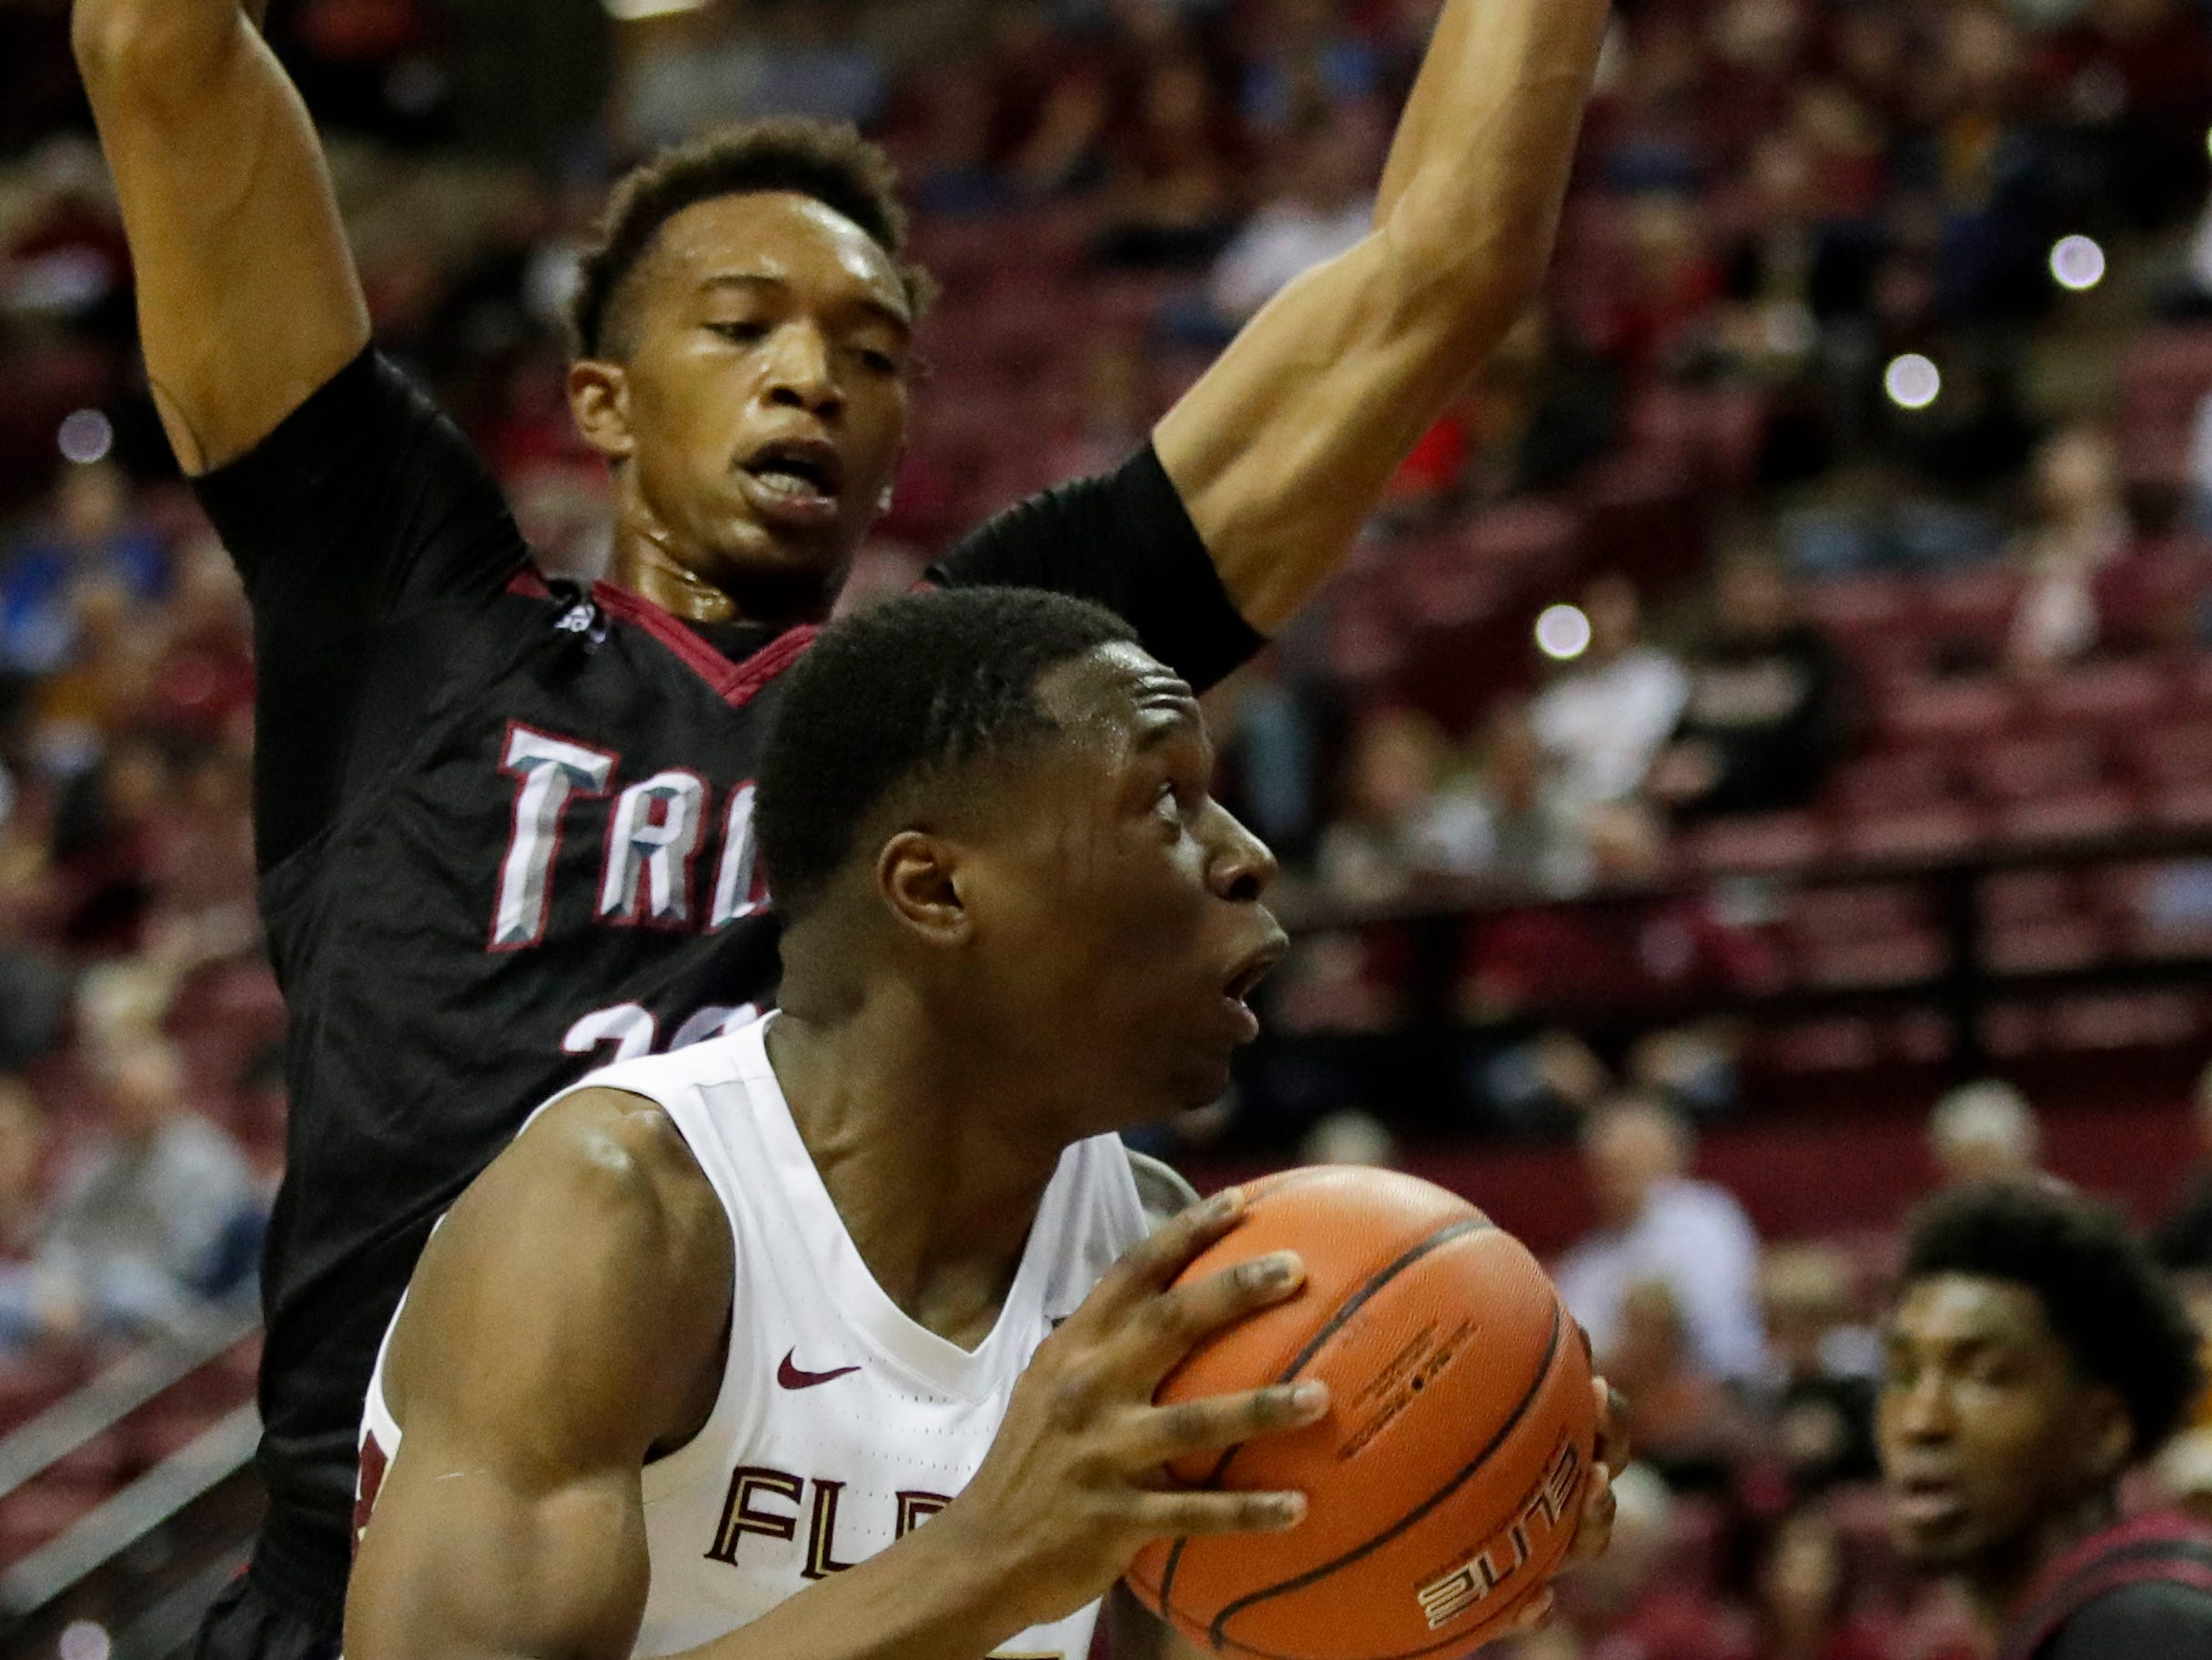 Florida State Seminoles forward Mfiondu Kabengele (25) looks to the hoop during a game between FSU and Troy University at Donald L. Tucker Civic Center Monday, Dec. 3, 2018.